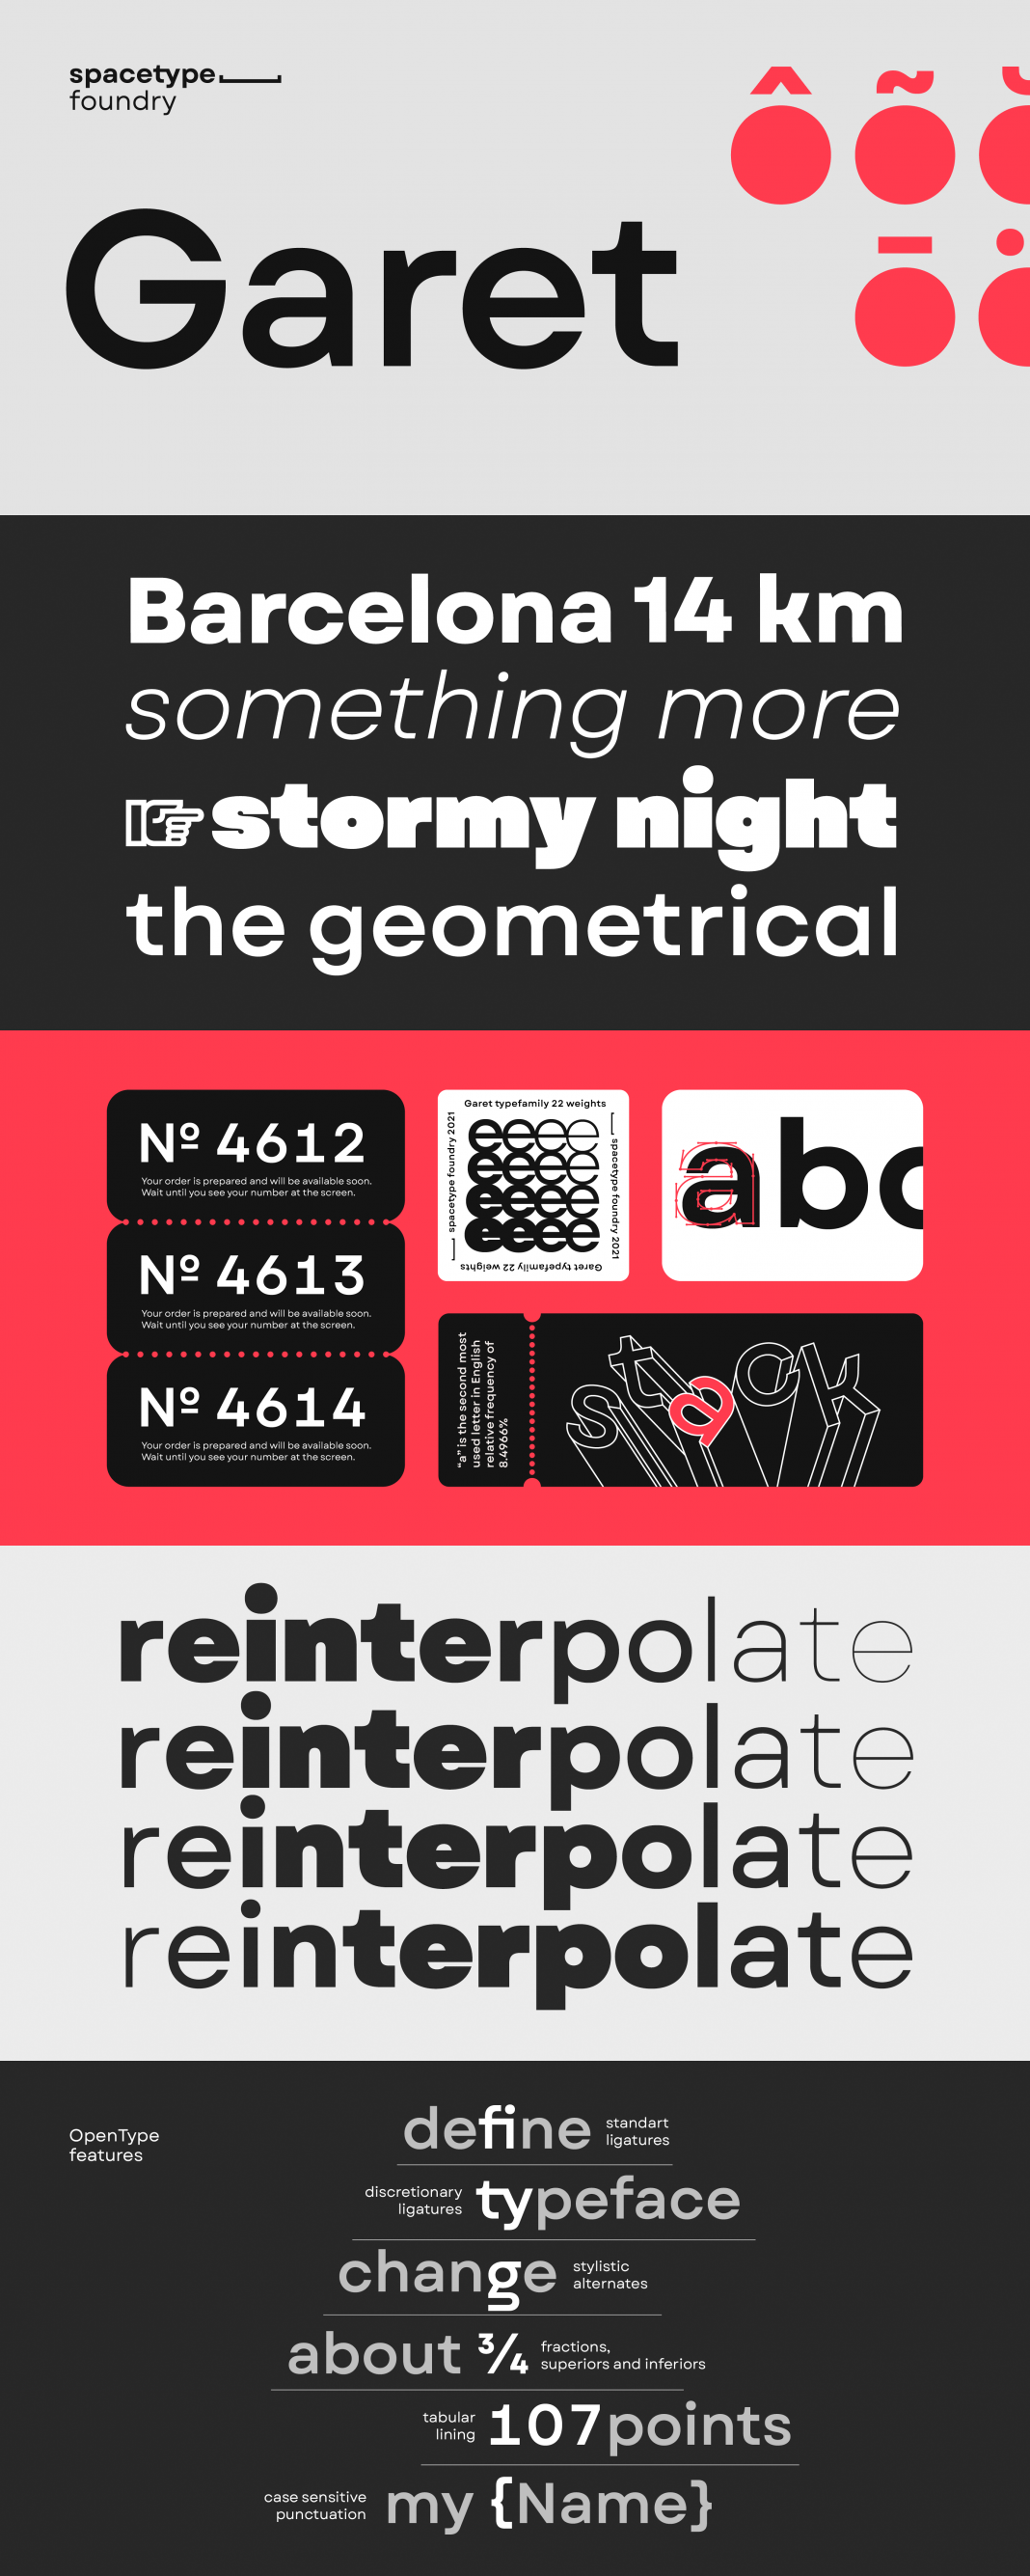 Garet Font Family from Spacetype